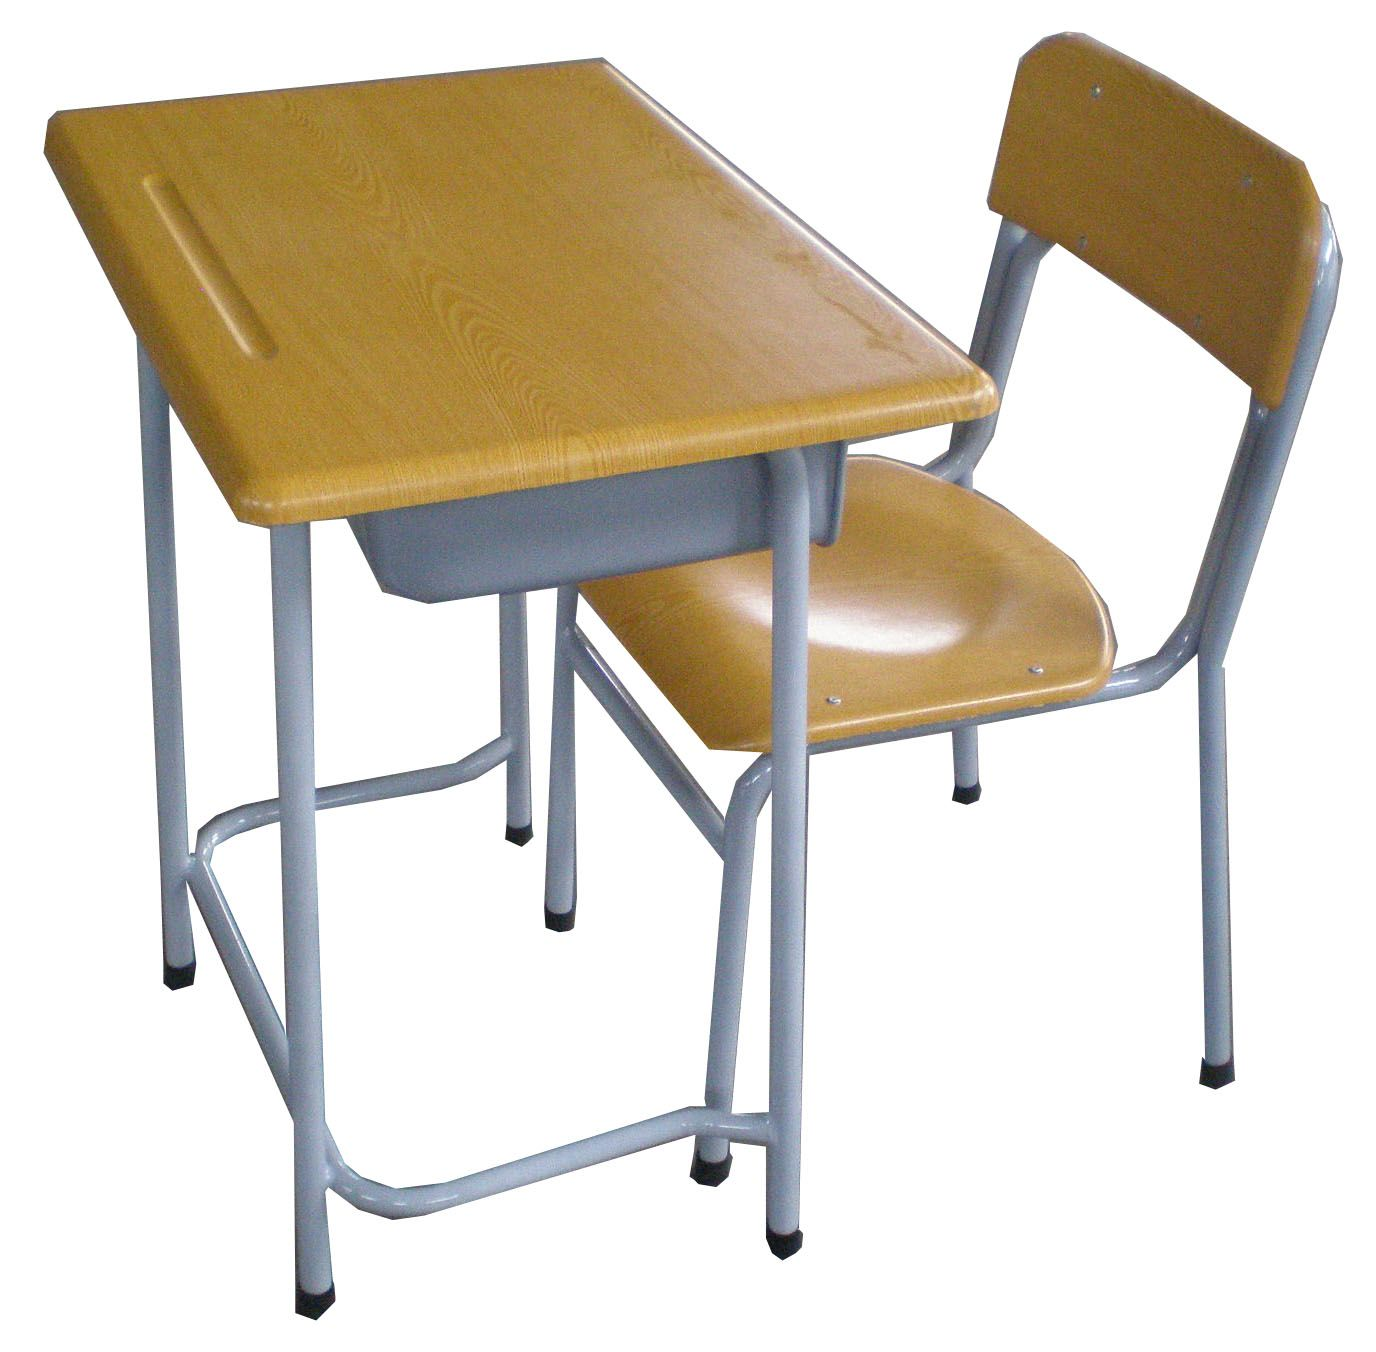 Wood clipart school bench 9 student mooreco education Classroom